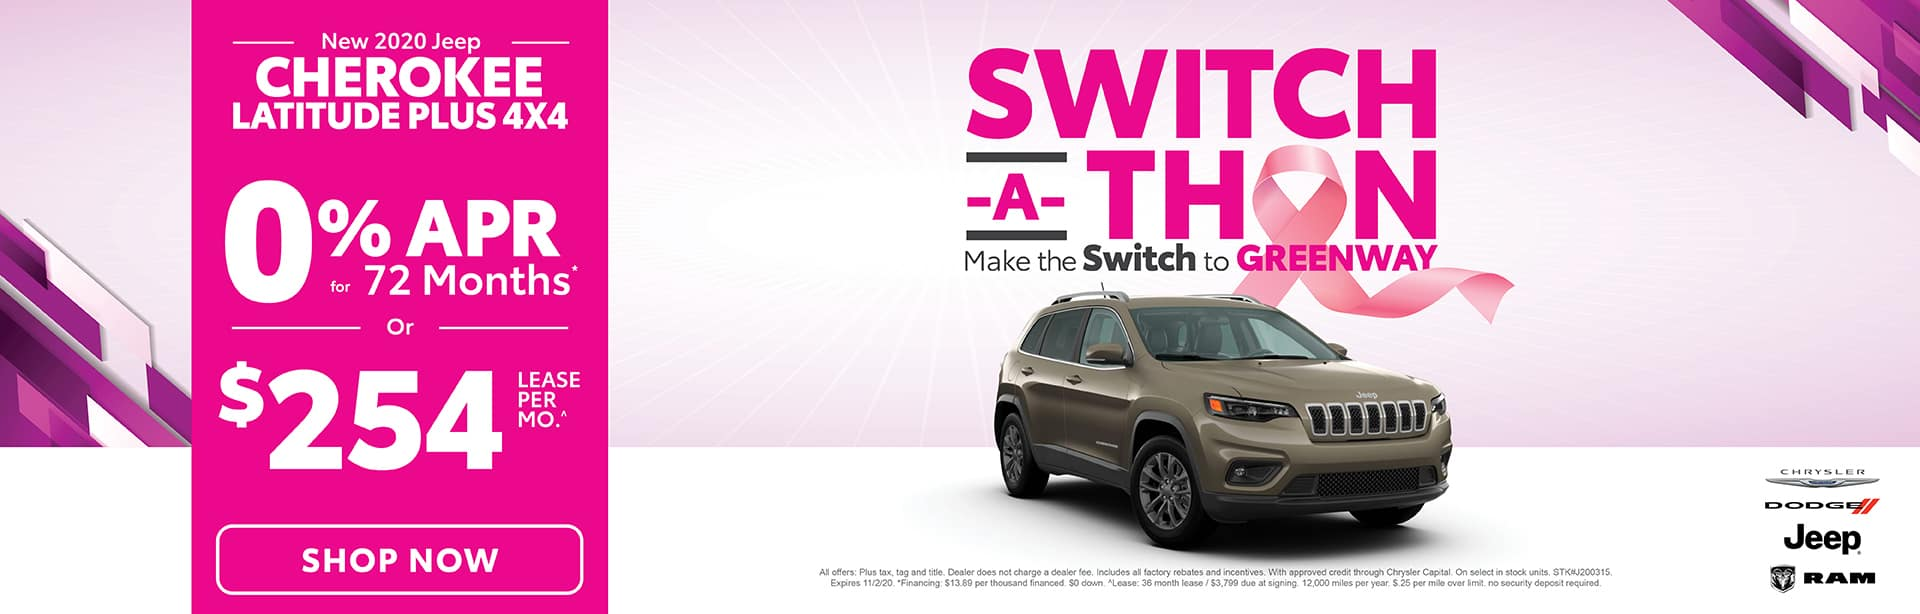 Switch-A-Thon - Cherokee